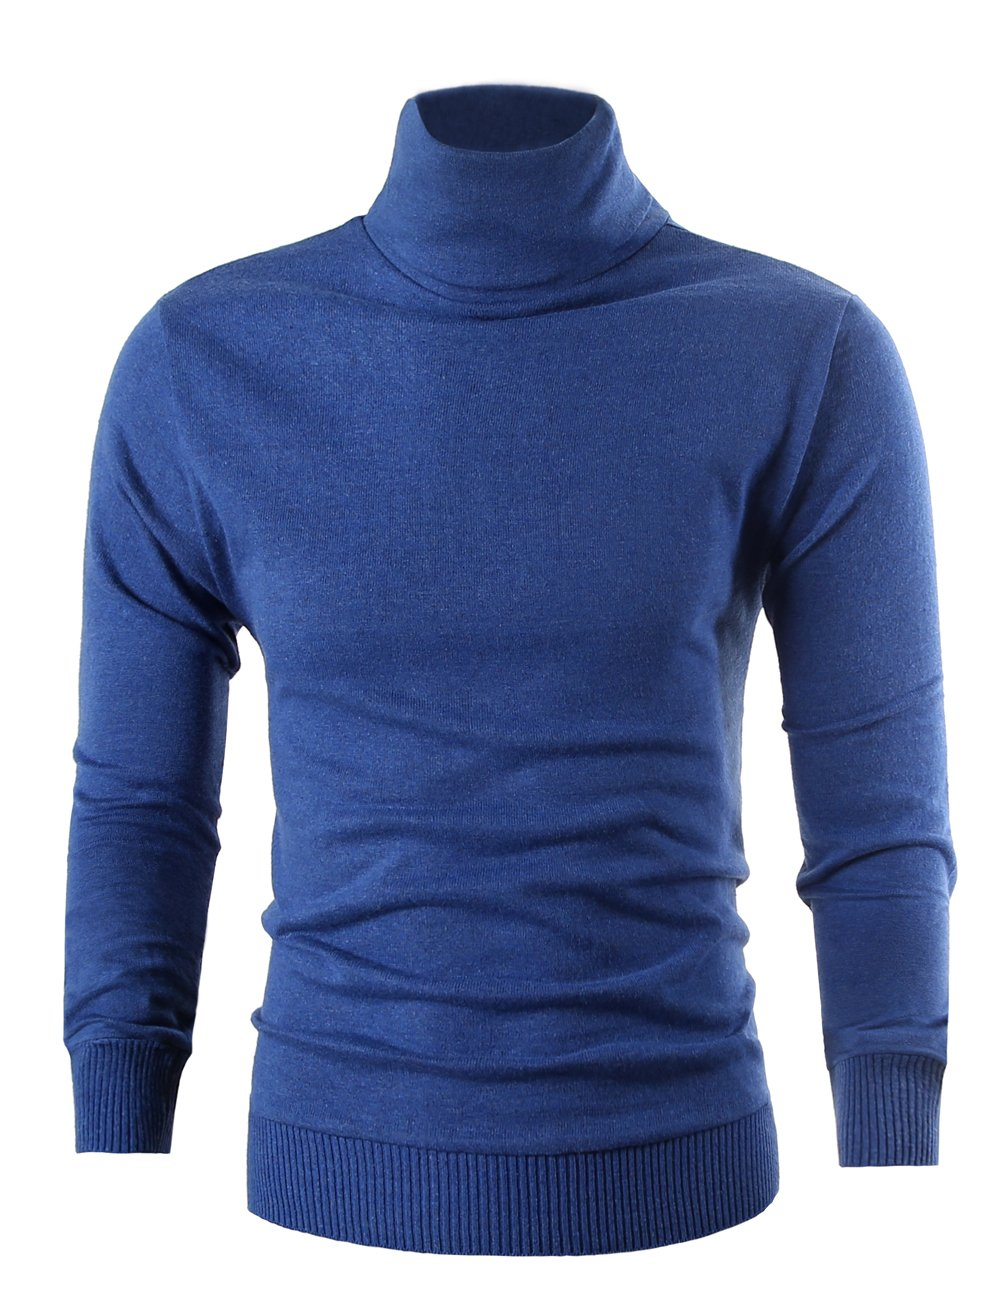 MIEDEON Mens Casual Basic Knitted Turtleneck Slim Fit Pullover Thermal Sweaters (Blue, XL)